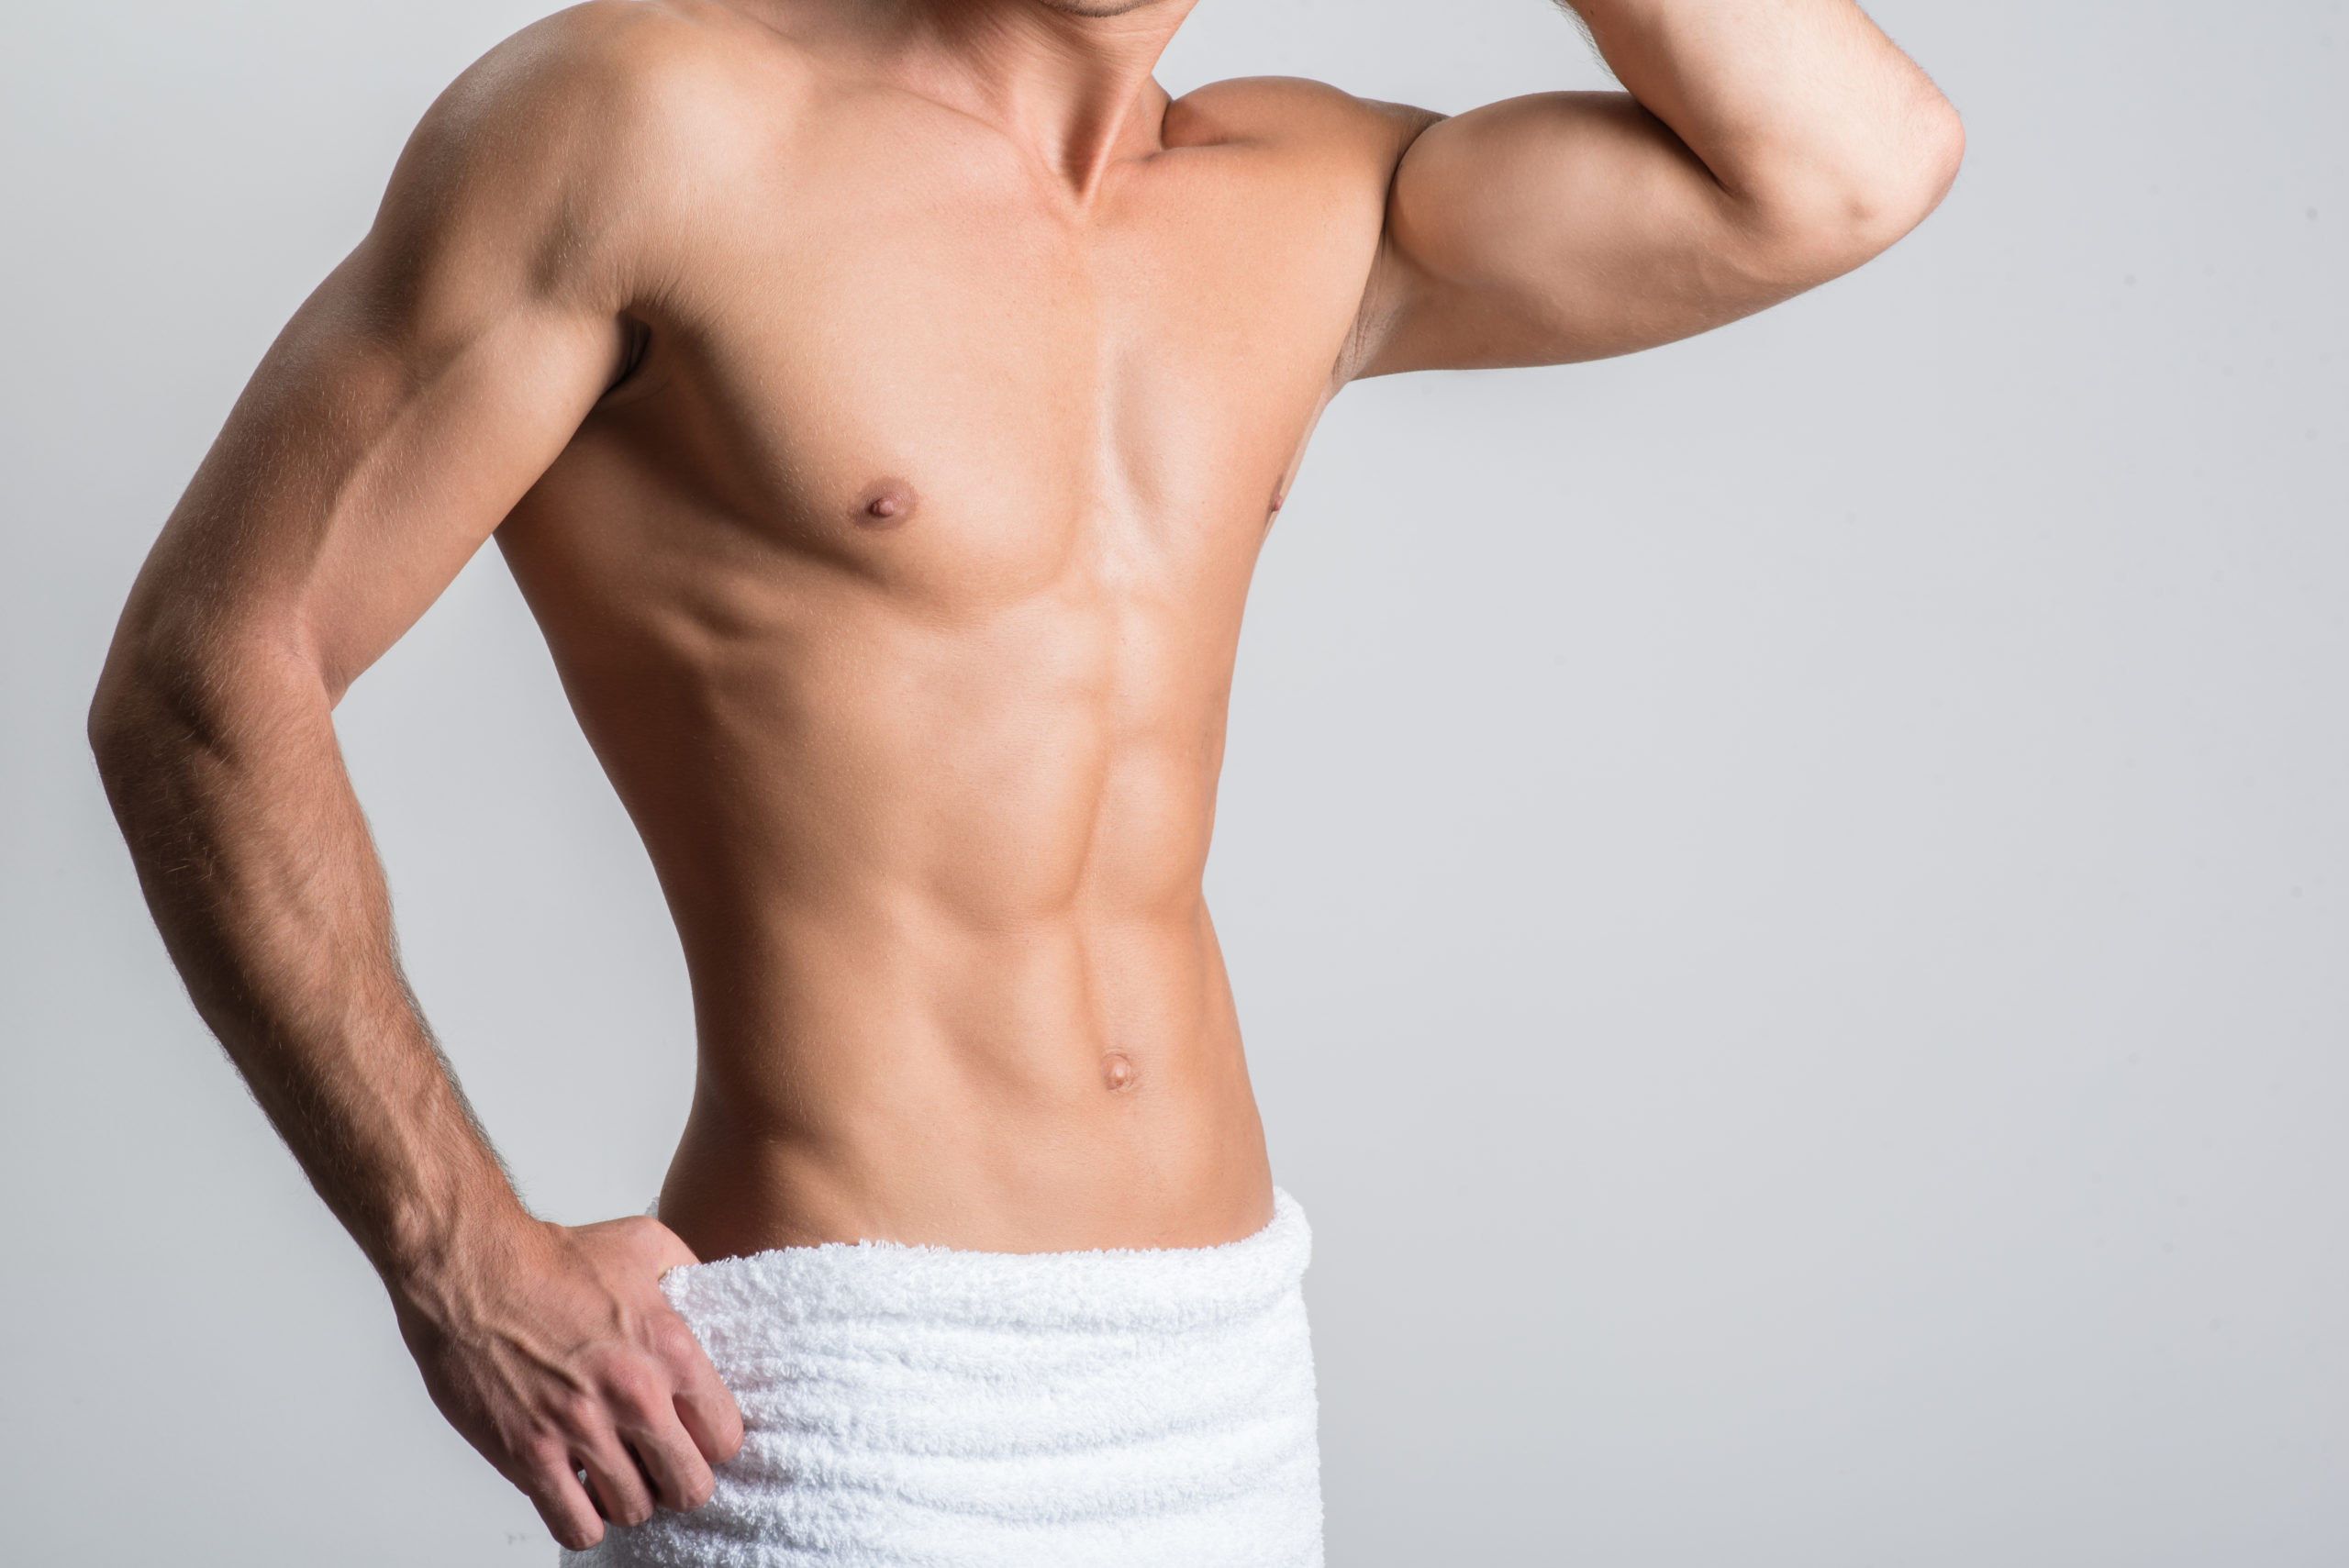 coolsculpting® male with fit upper body and torso westbrook, connecticut